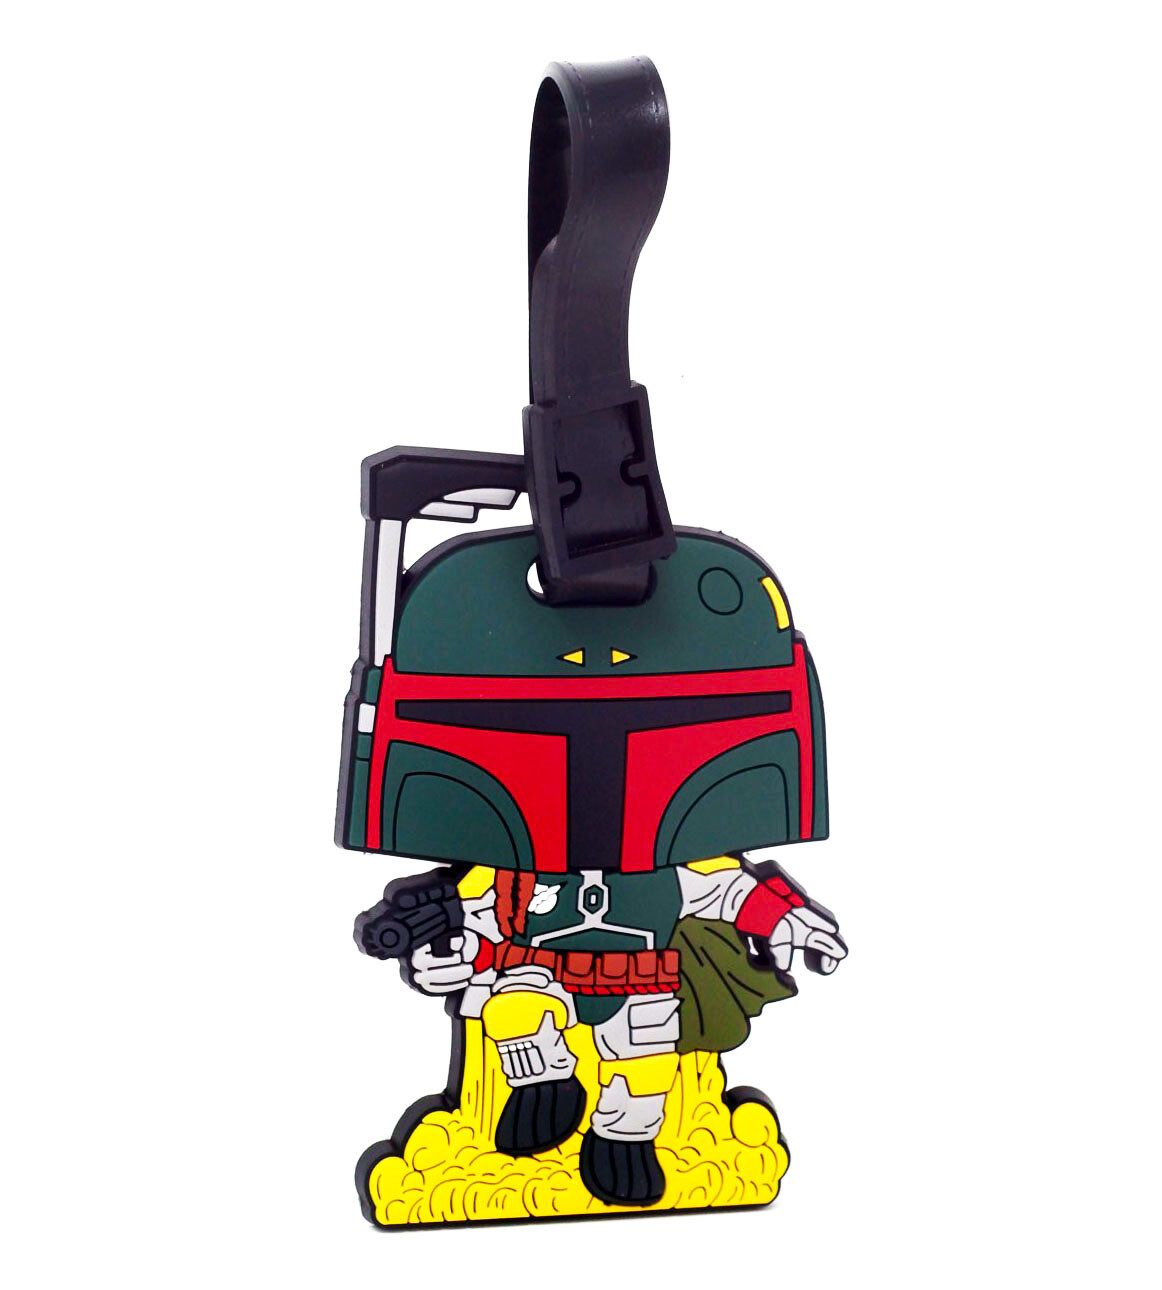 Boba Fett Jet Pack Star Wars Funko Pop Rubber Luggage Tag Smuggler's Bounty Exclusive